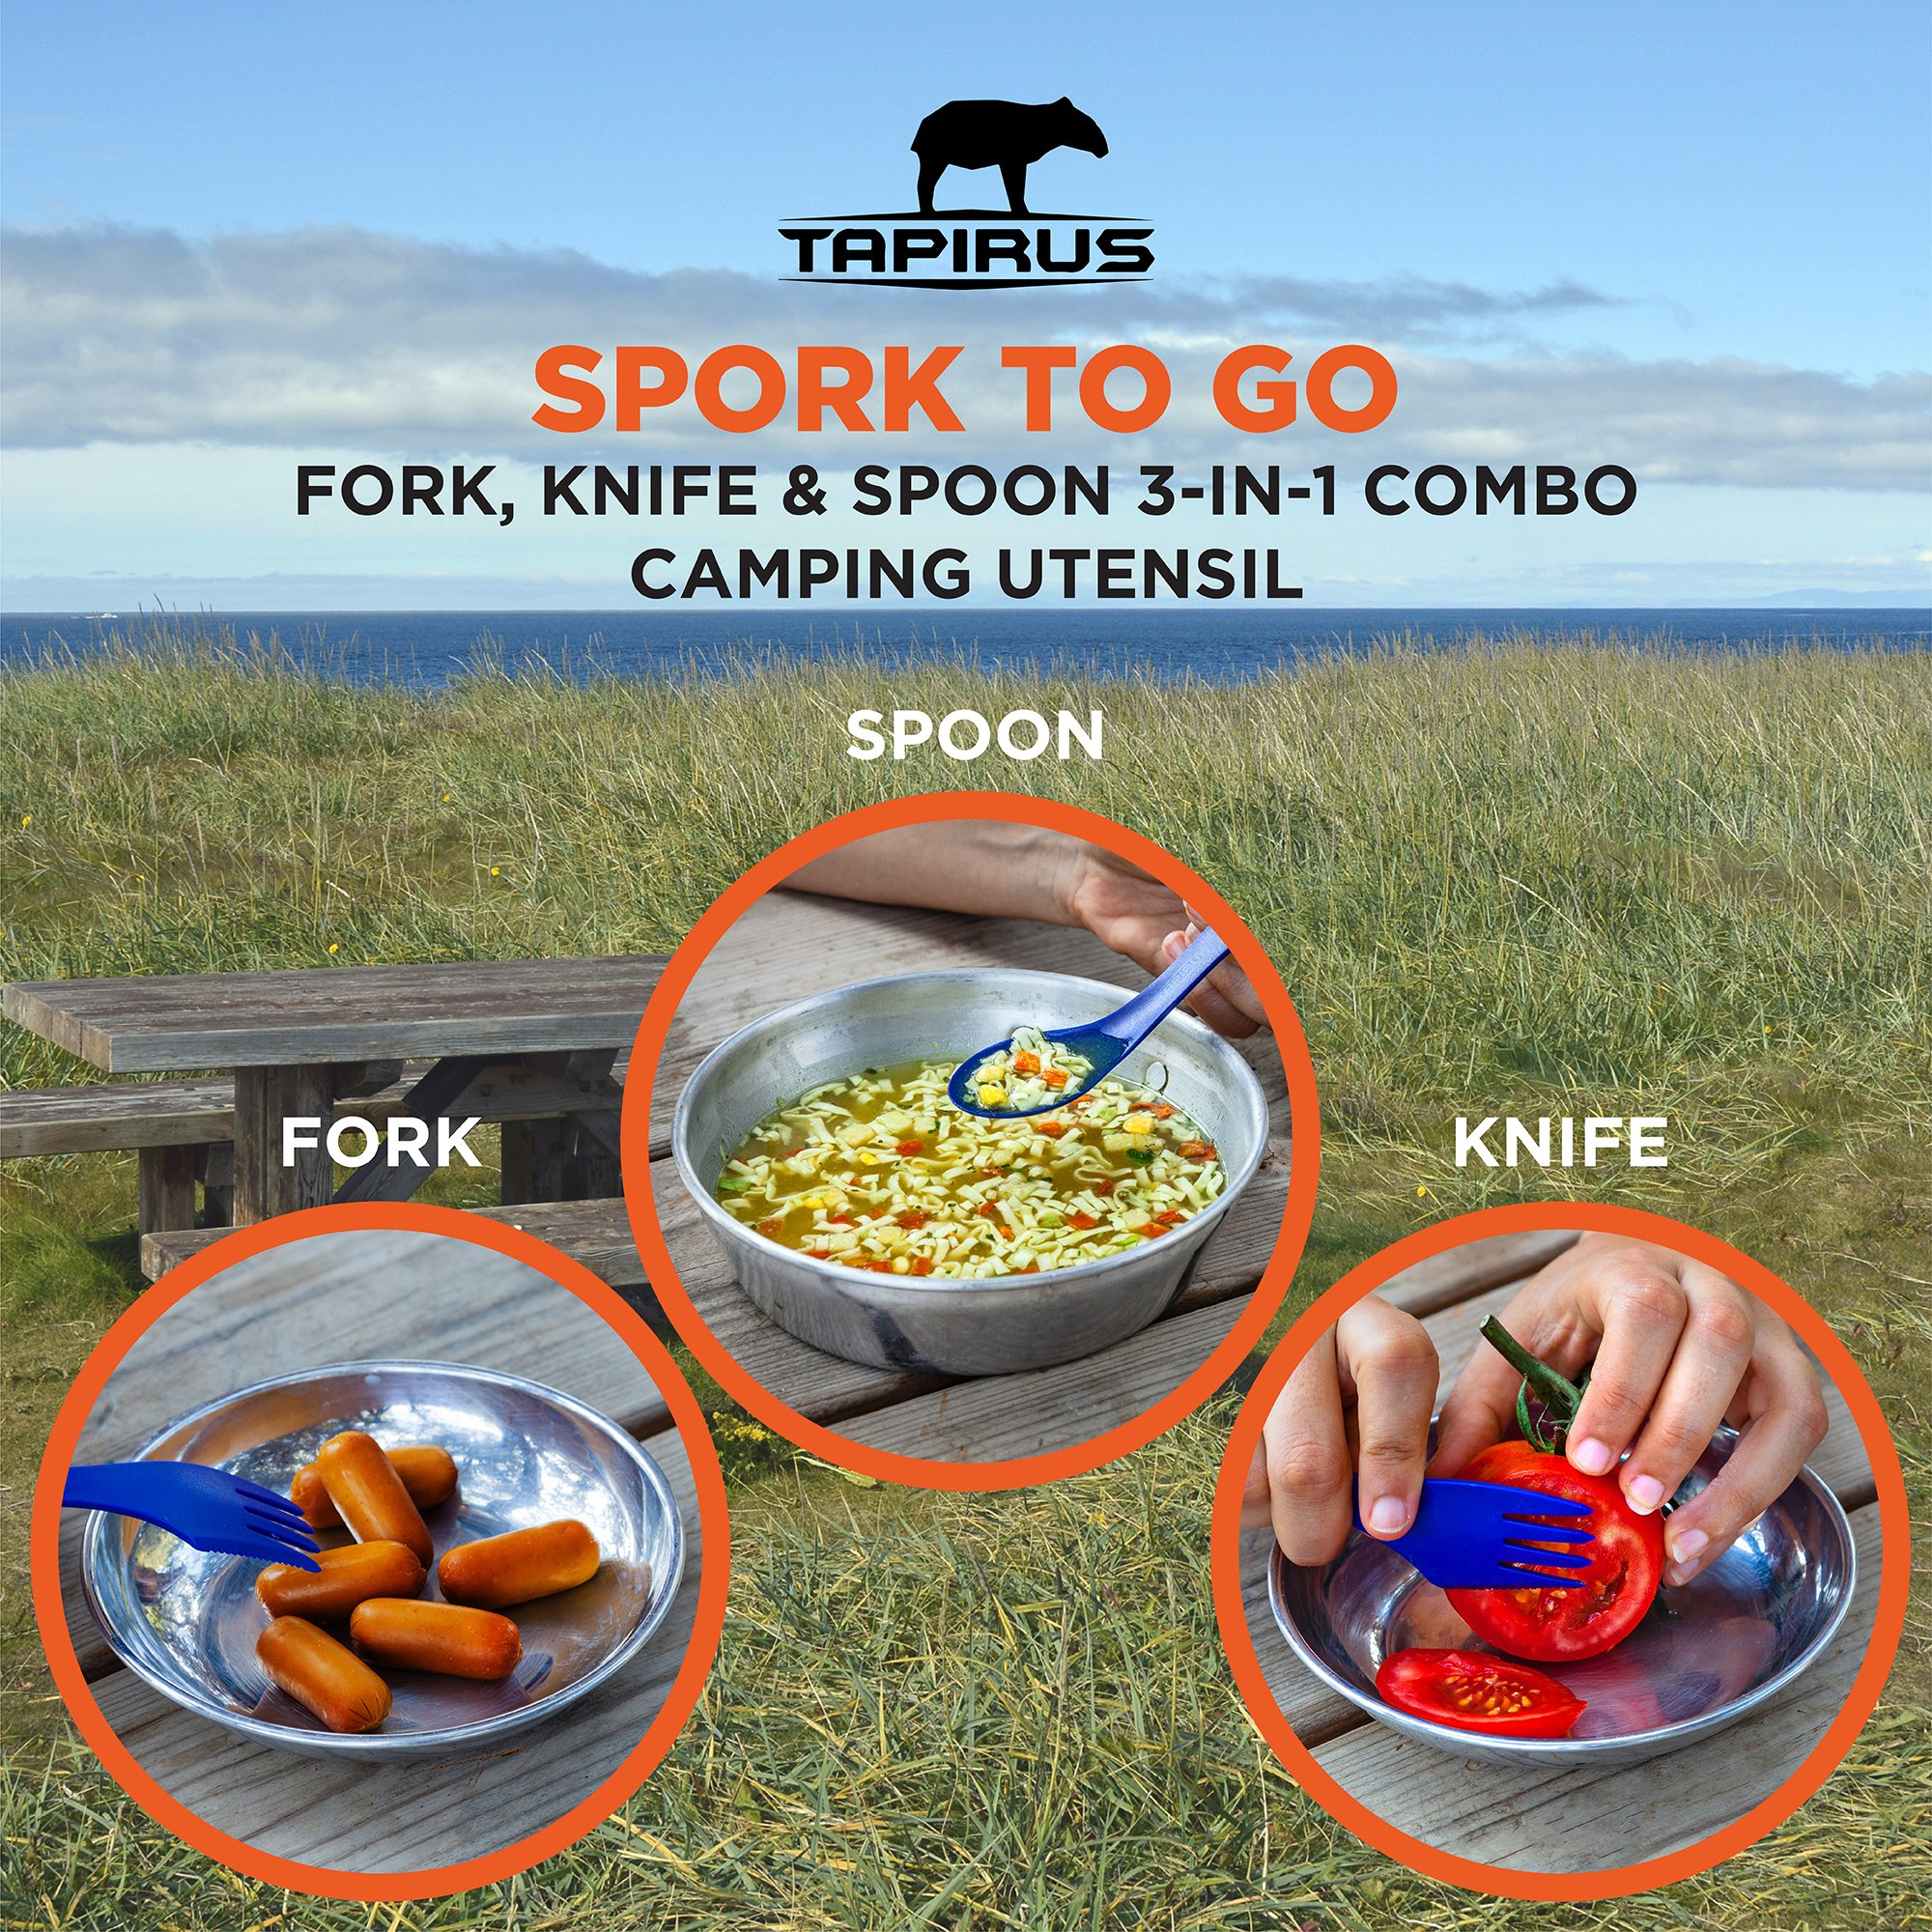 Tapirus 4 Blue Spork To Go Set | Durable & BPA Free Tritan Sporks | Spoon, Fork & Knife Combo Utensils Flatware | Mess Kit For Camping, Fishing, Hunting & Outdoor Activities | Comes In A Carrying Case by Tapirus (Image #3)